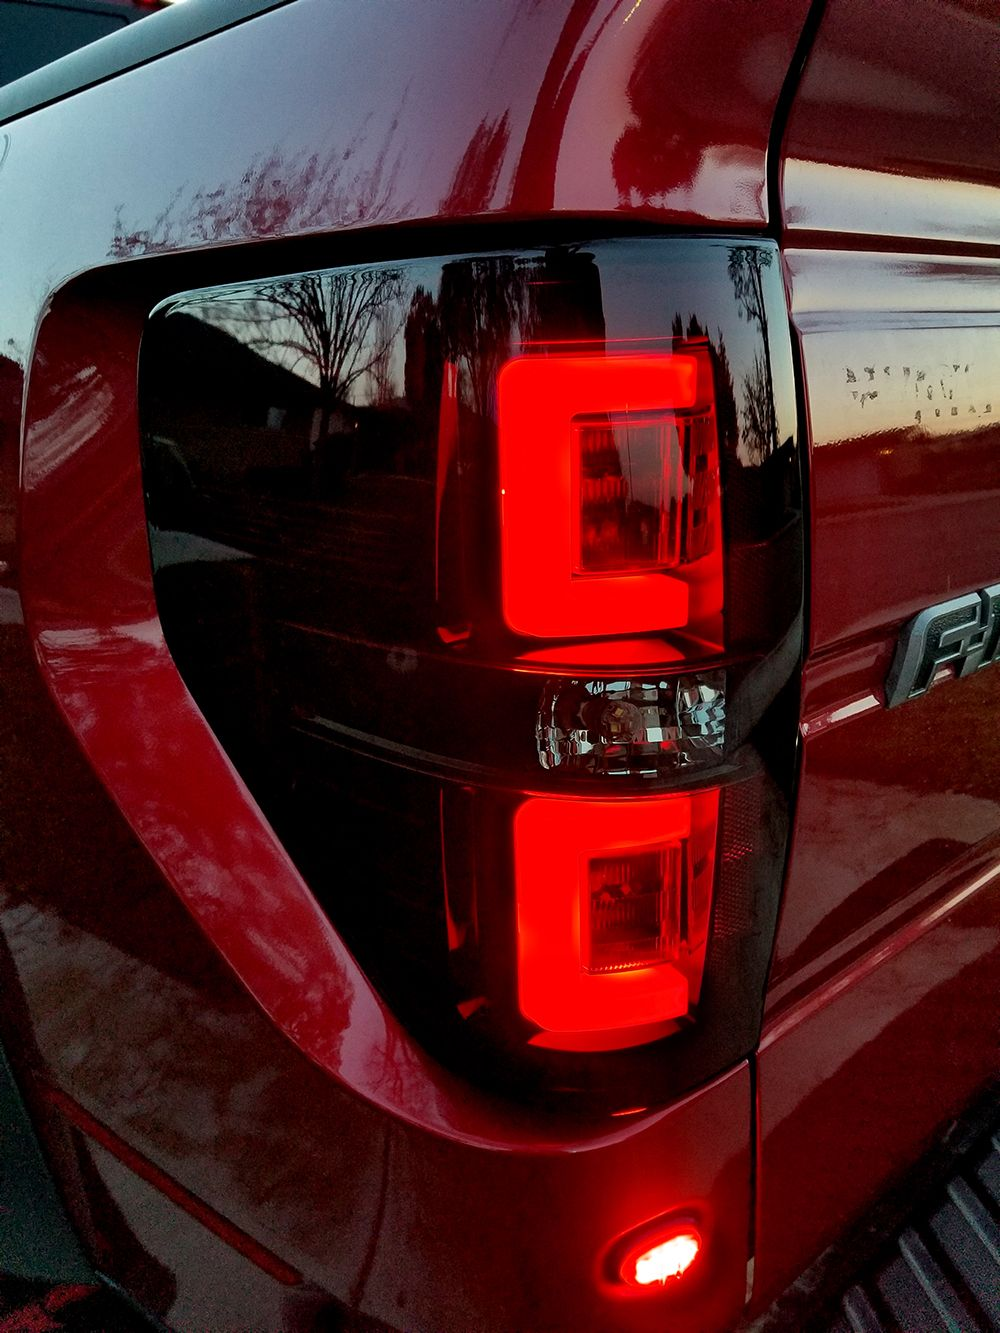 Ford f150 raptor oled taillights truck car parts 264368rbk recon truck accessories